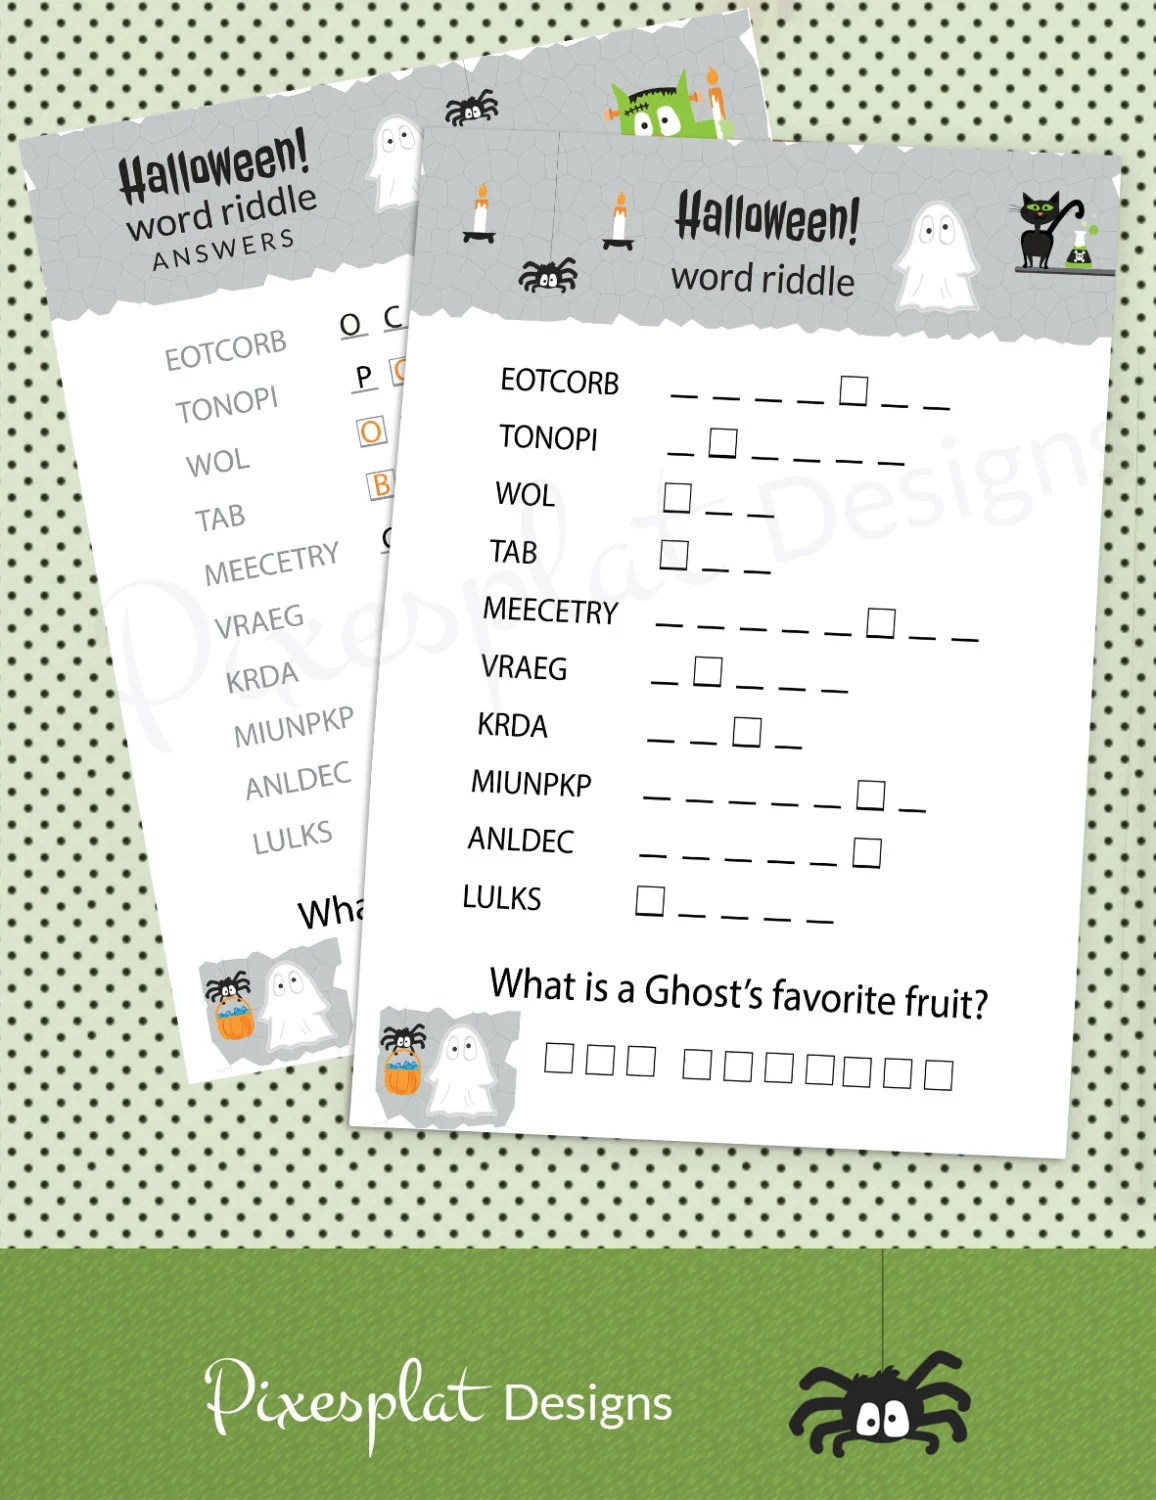 Halloween Word Riddle Game Printable School Party